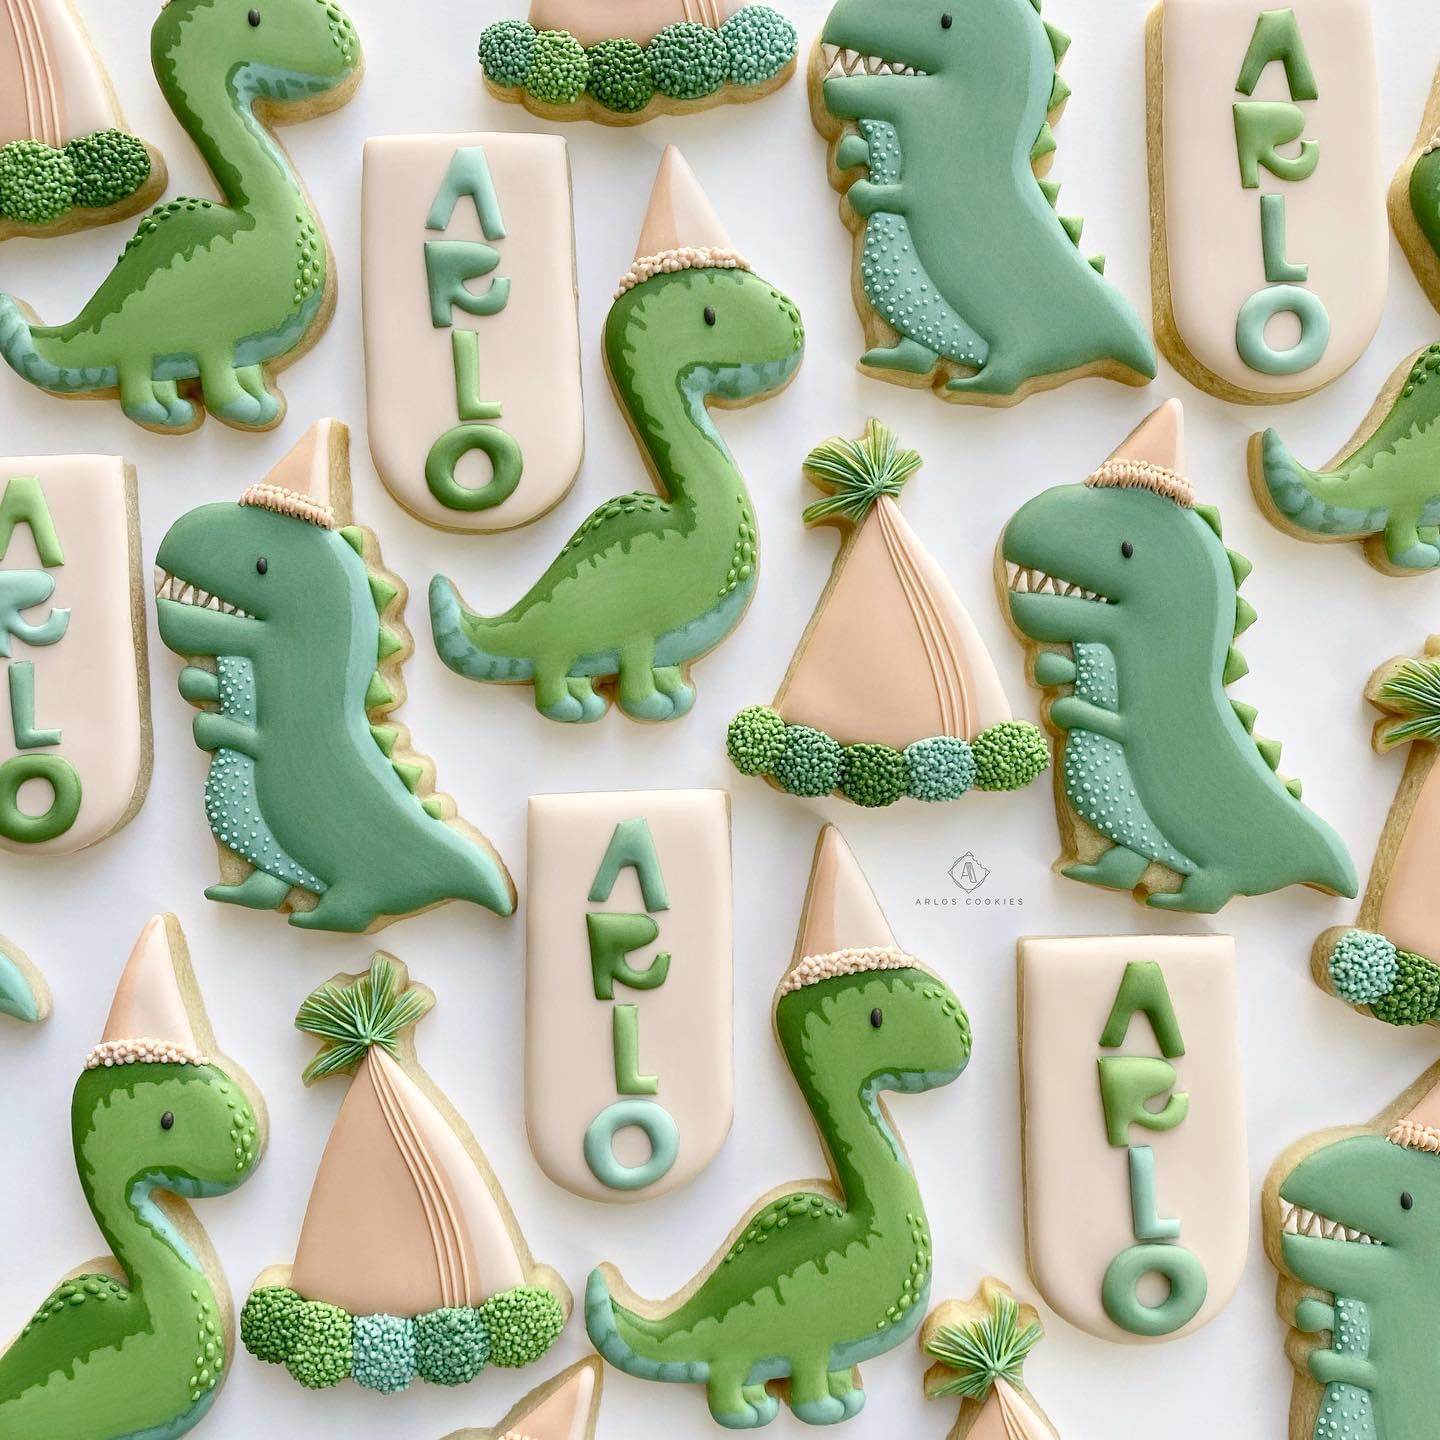 """Decorated cookies in the shapes of dinosaurs, party hats, and pendants with the name """"Arlo"""" arranged in a flat lay."""